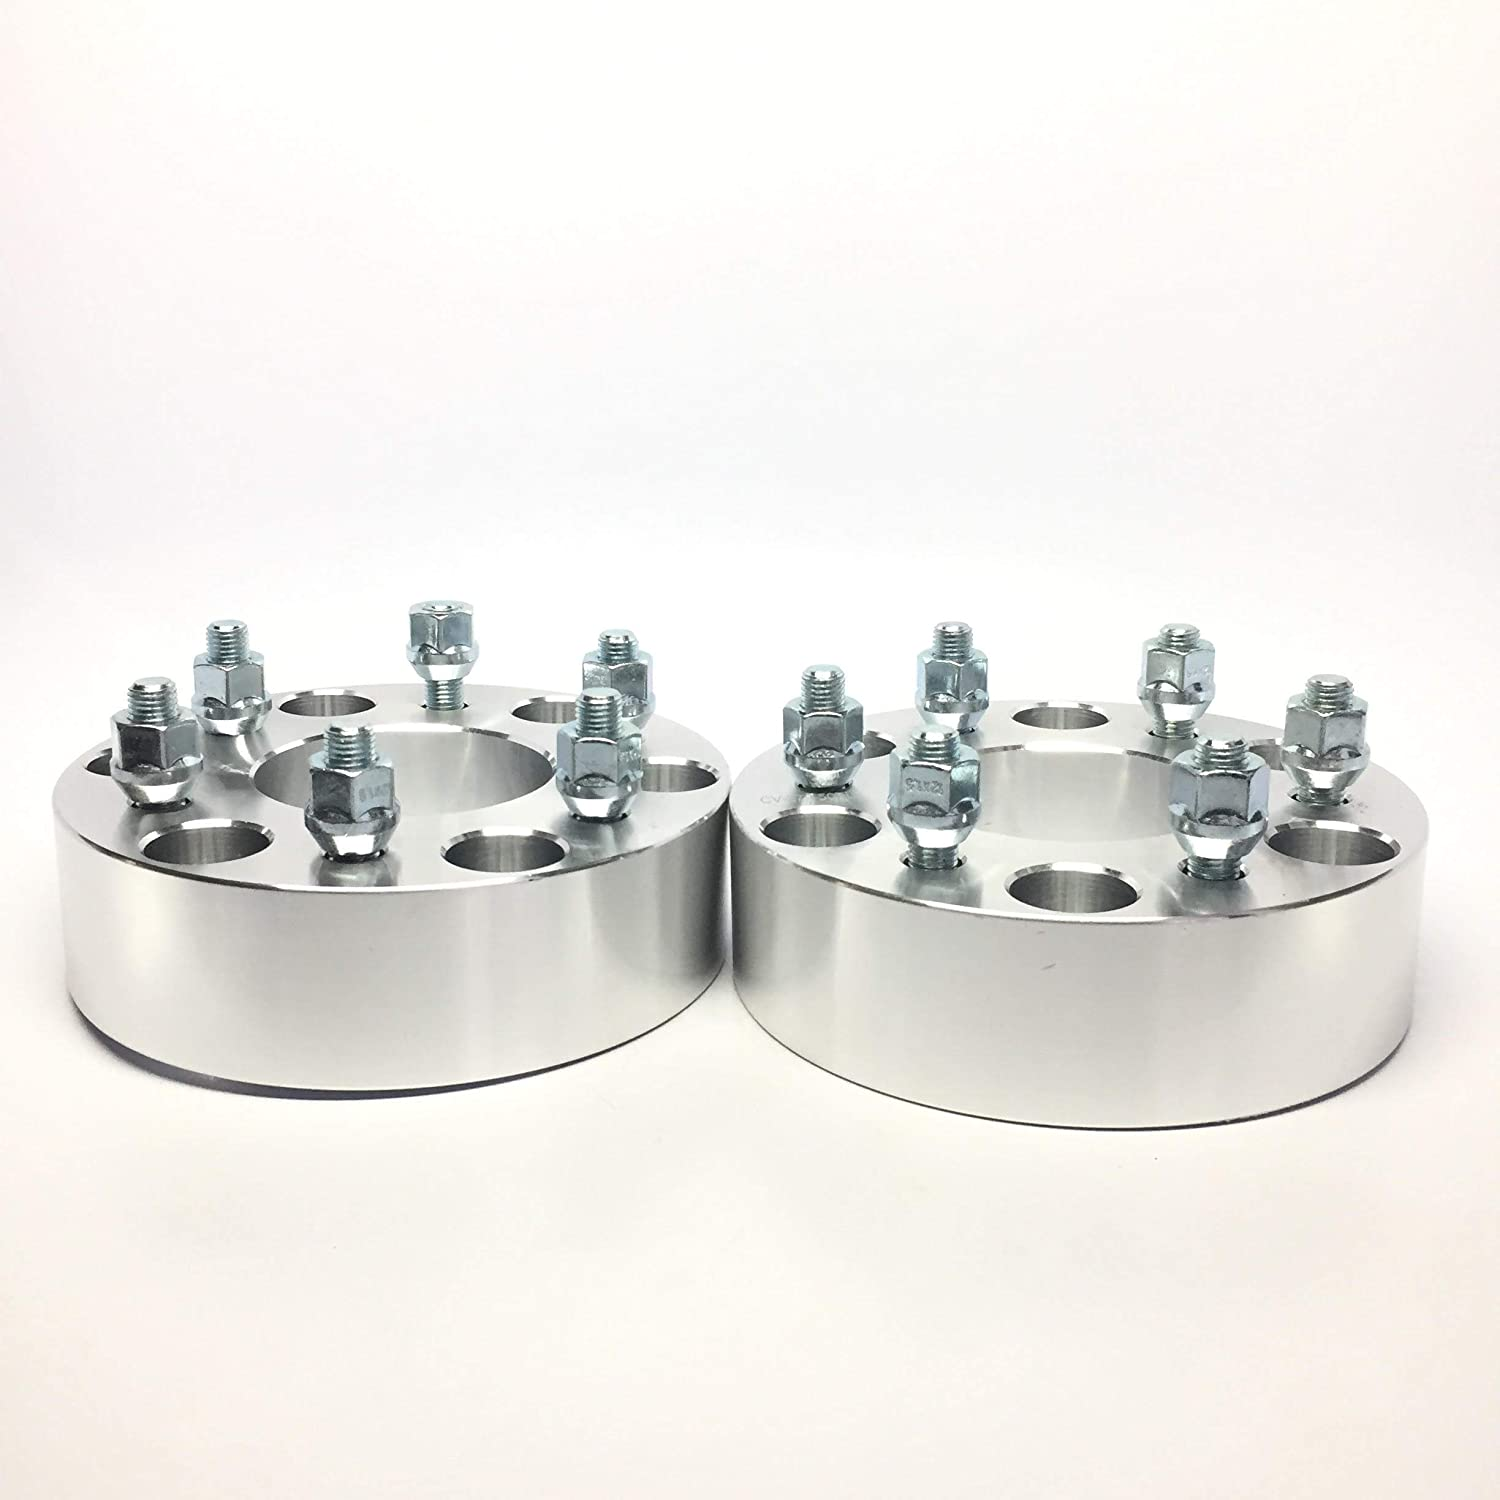 2 Pieces 1.5 38mm Hub Centric No Lip Wheel Adapters Spacers Bolt Pattern 6x5.5 to 6x5 6x139.7 to 6x127 Thread Pitch 12x1.5 Center Bore 78.3mm Fits Chevy